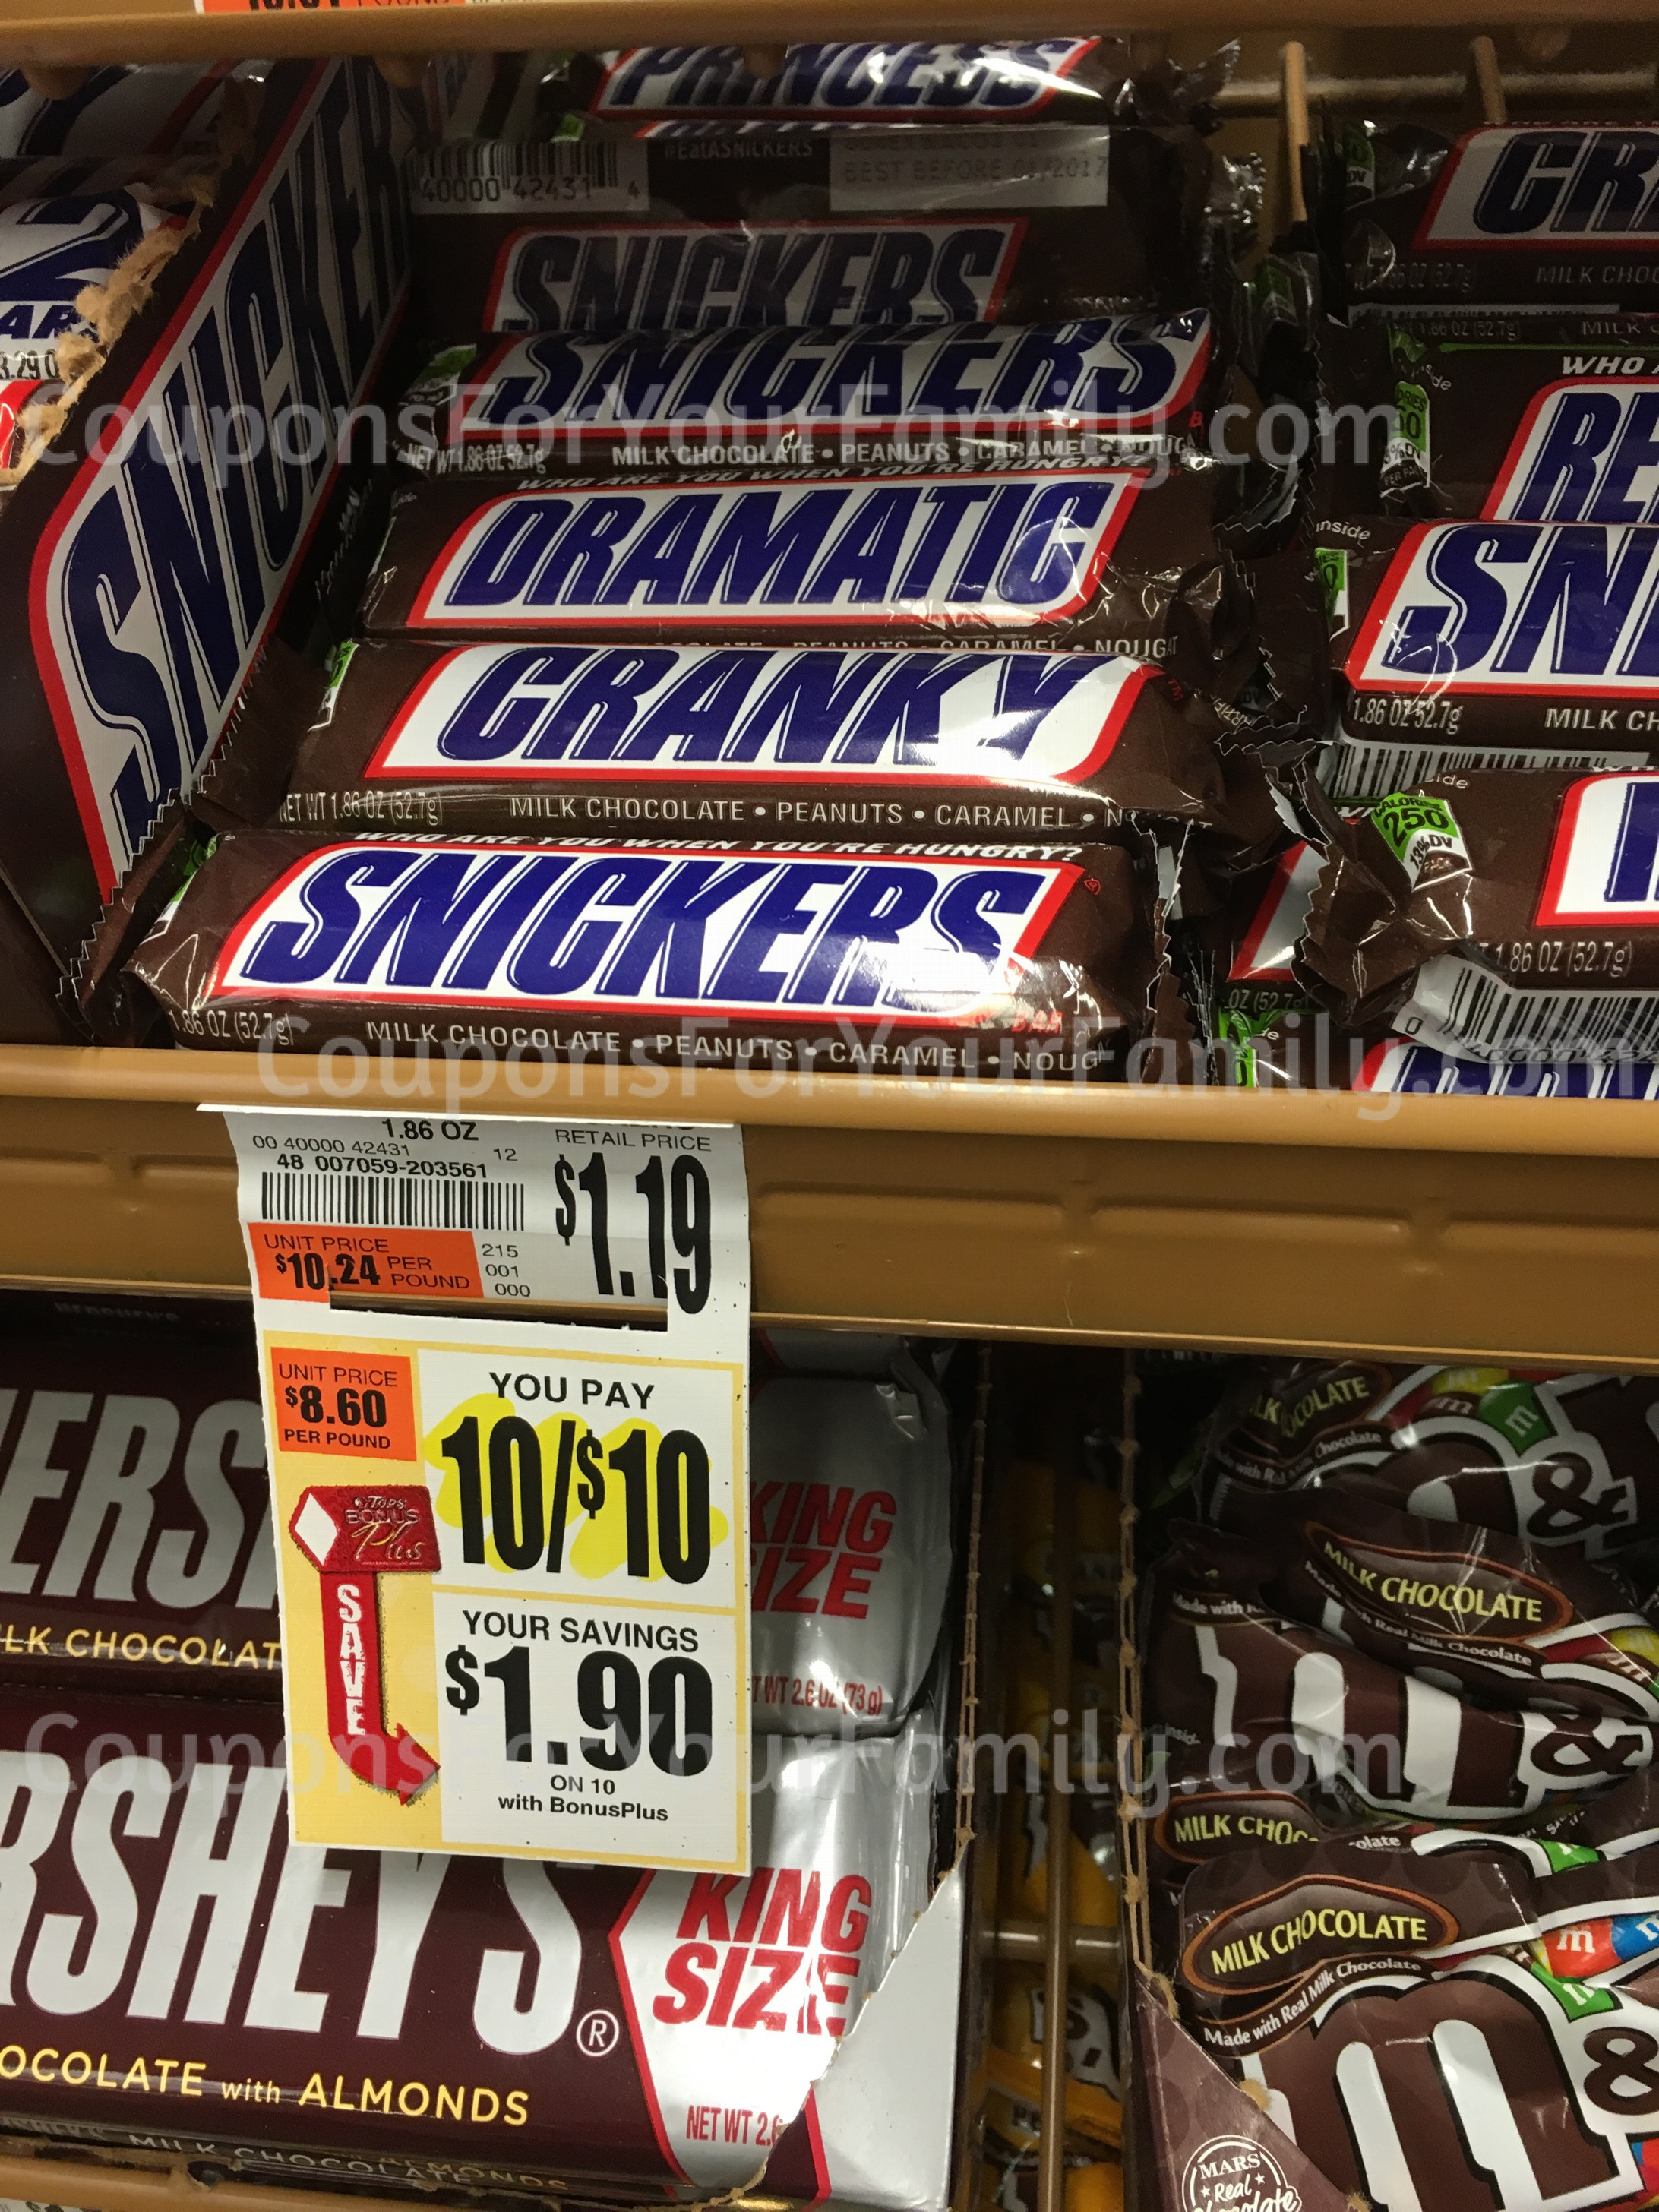 Snickers Bars only $.50 at Tops after new coupon!